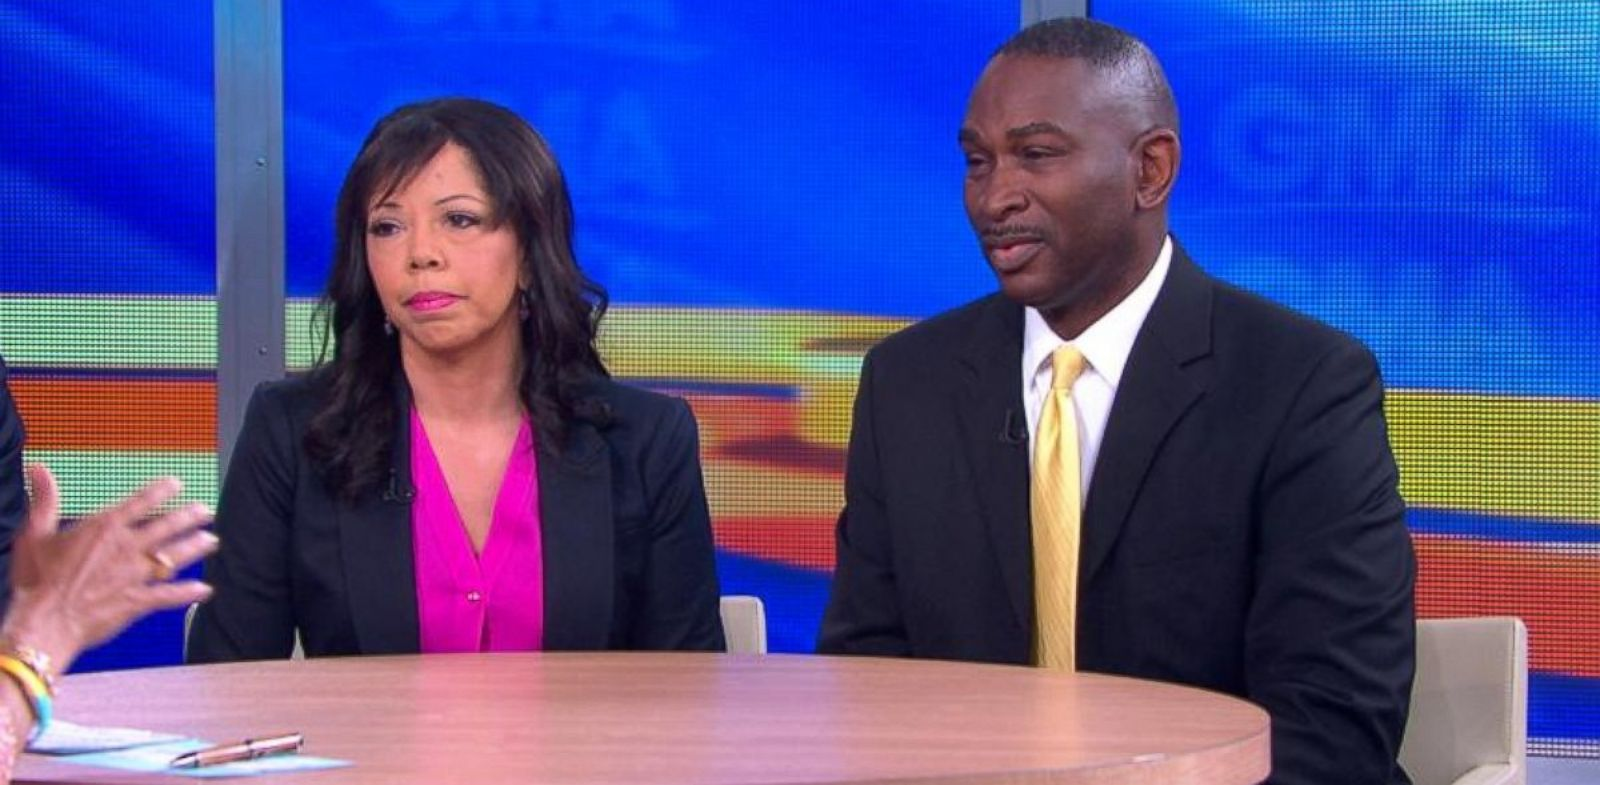 PHOTO: Jordan Davis parents, Lucia McBath and Ronald Davis, on Good Morning America, Feb. 19, 2014.